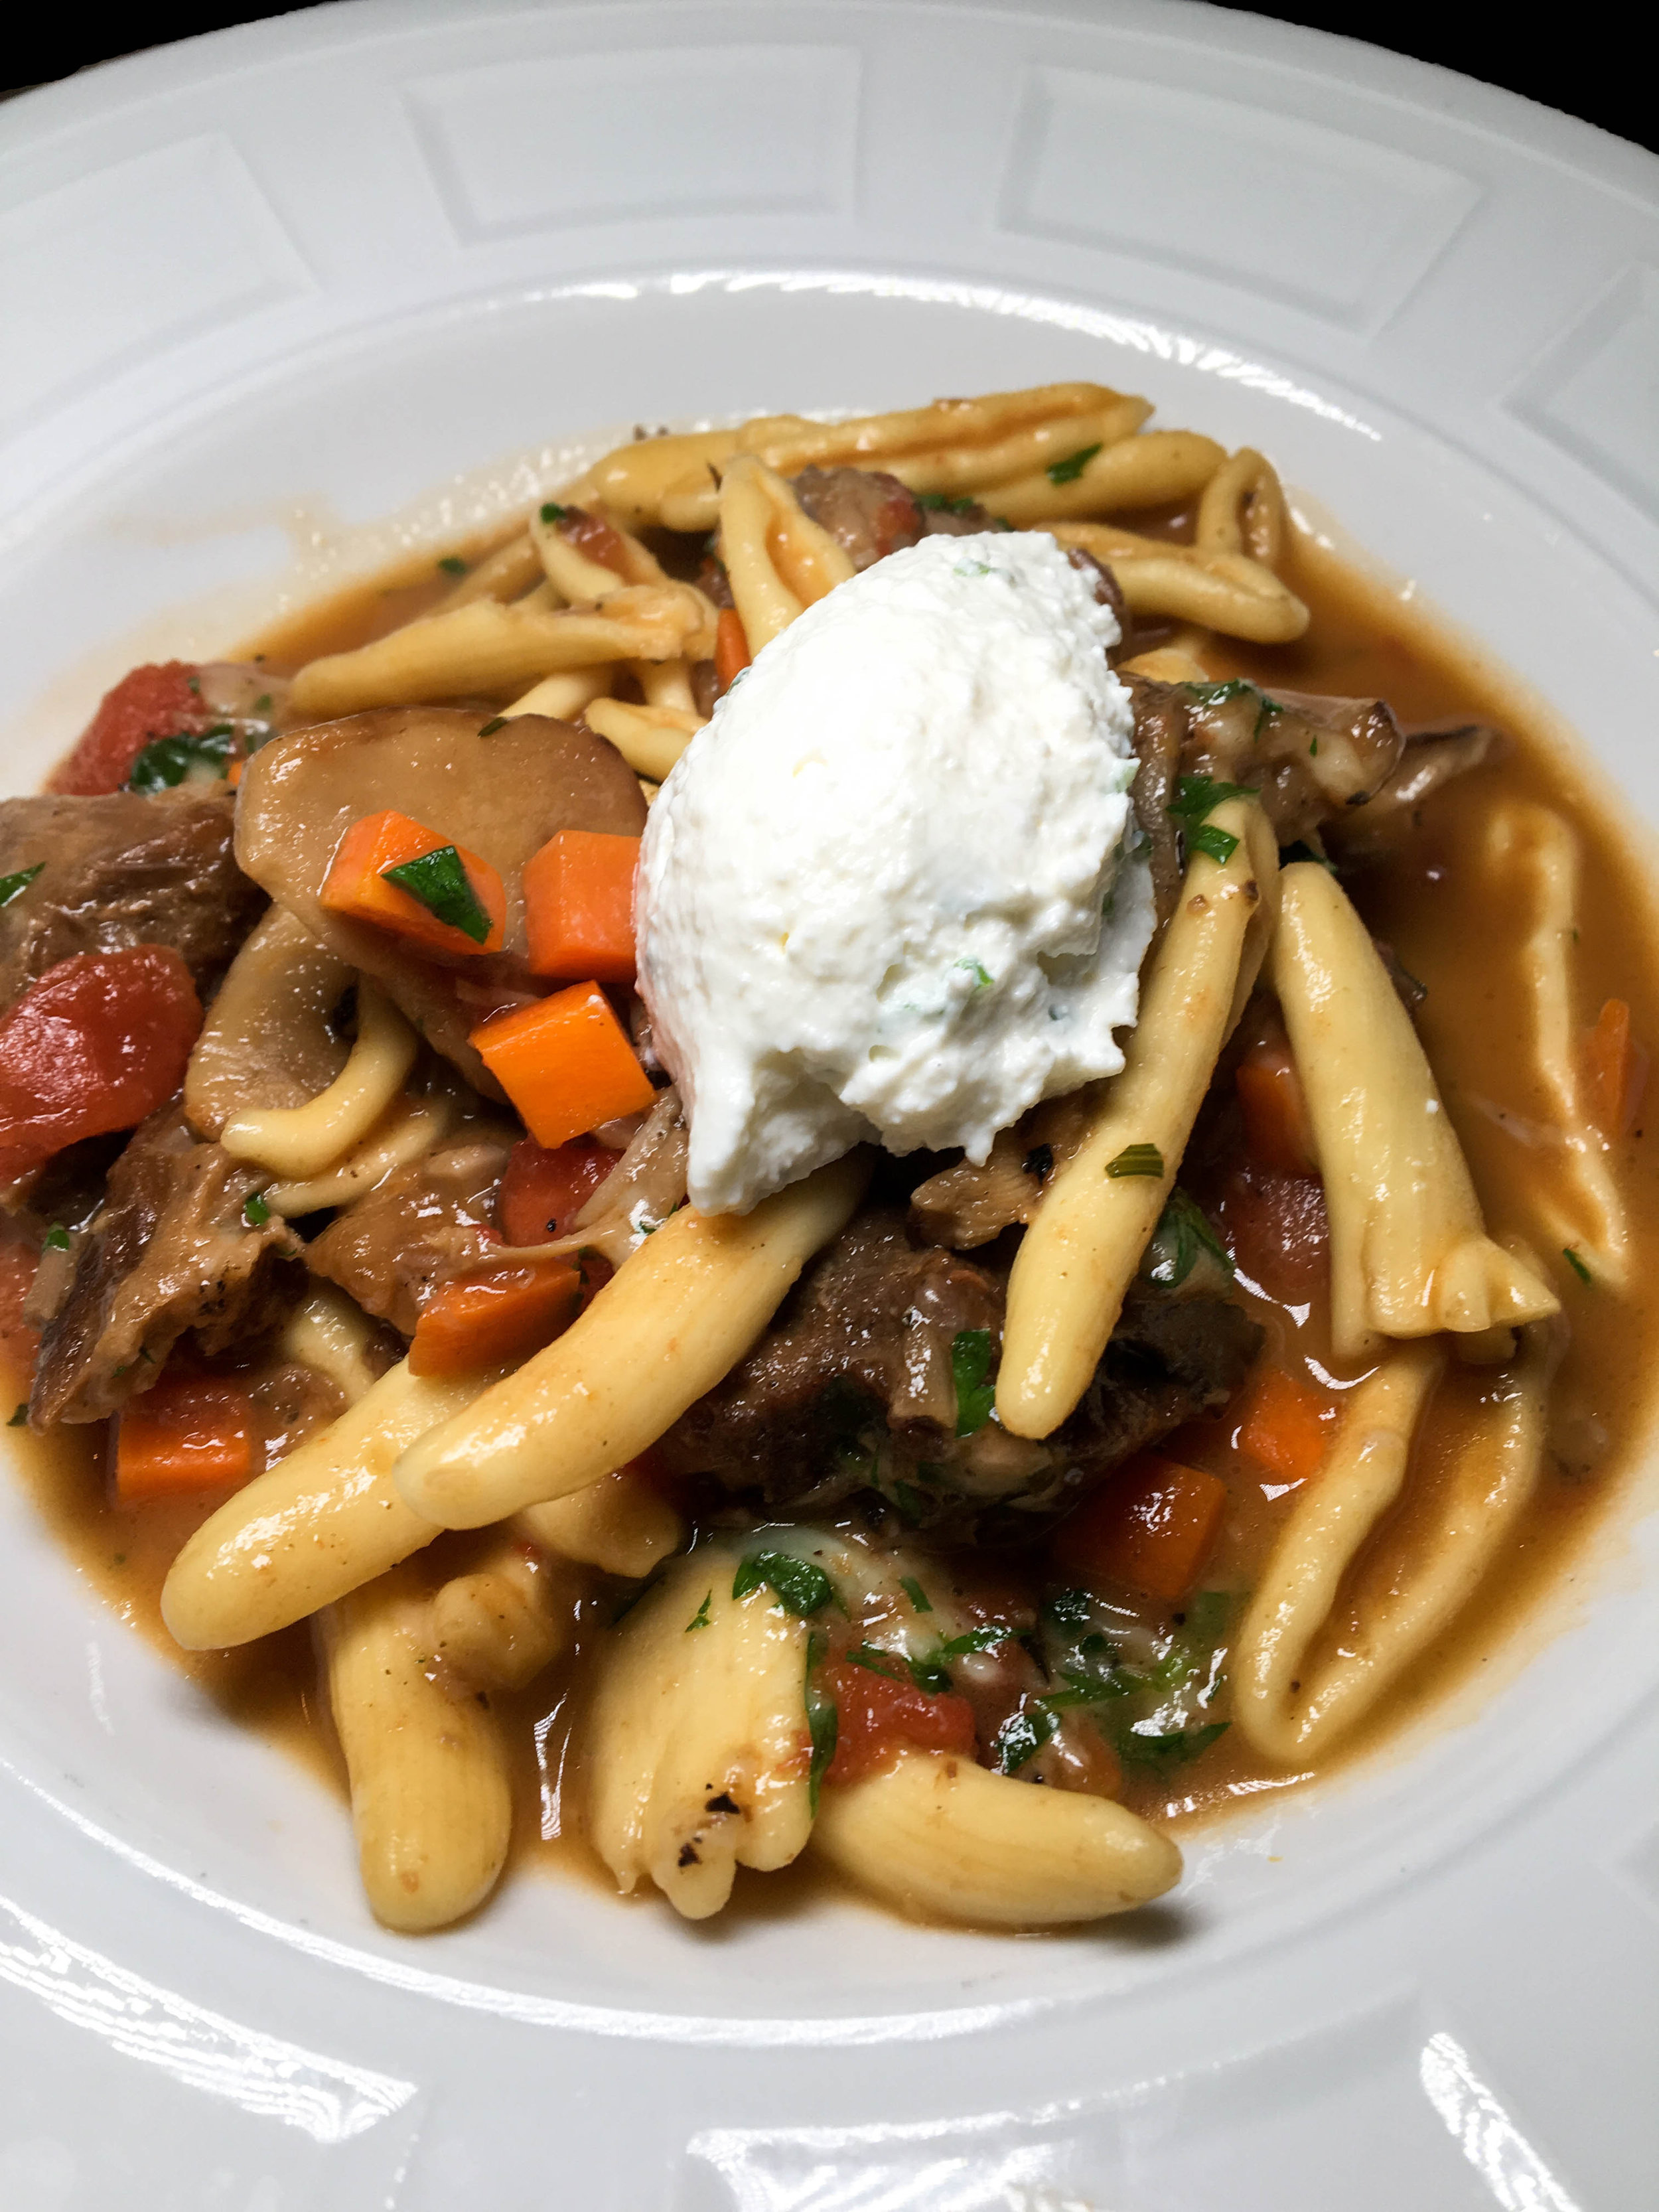 Fresh Cavatelli with Braised Berkshire Pork Shank Ragu - Porcini Mushrooms, Herbed Ricotta, Red Wine